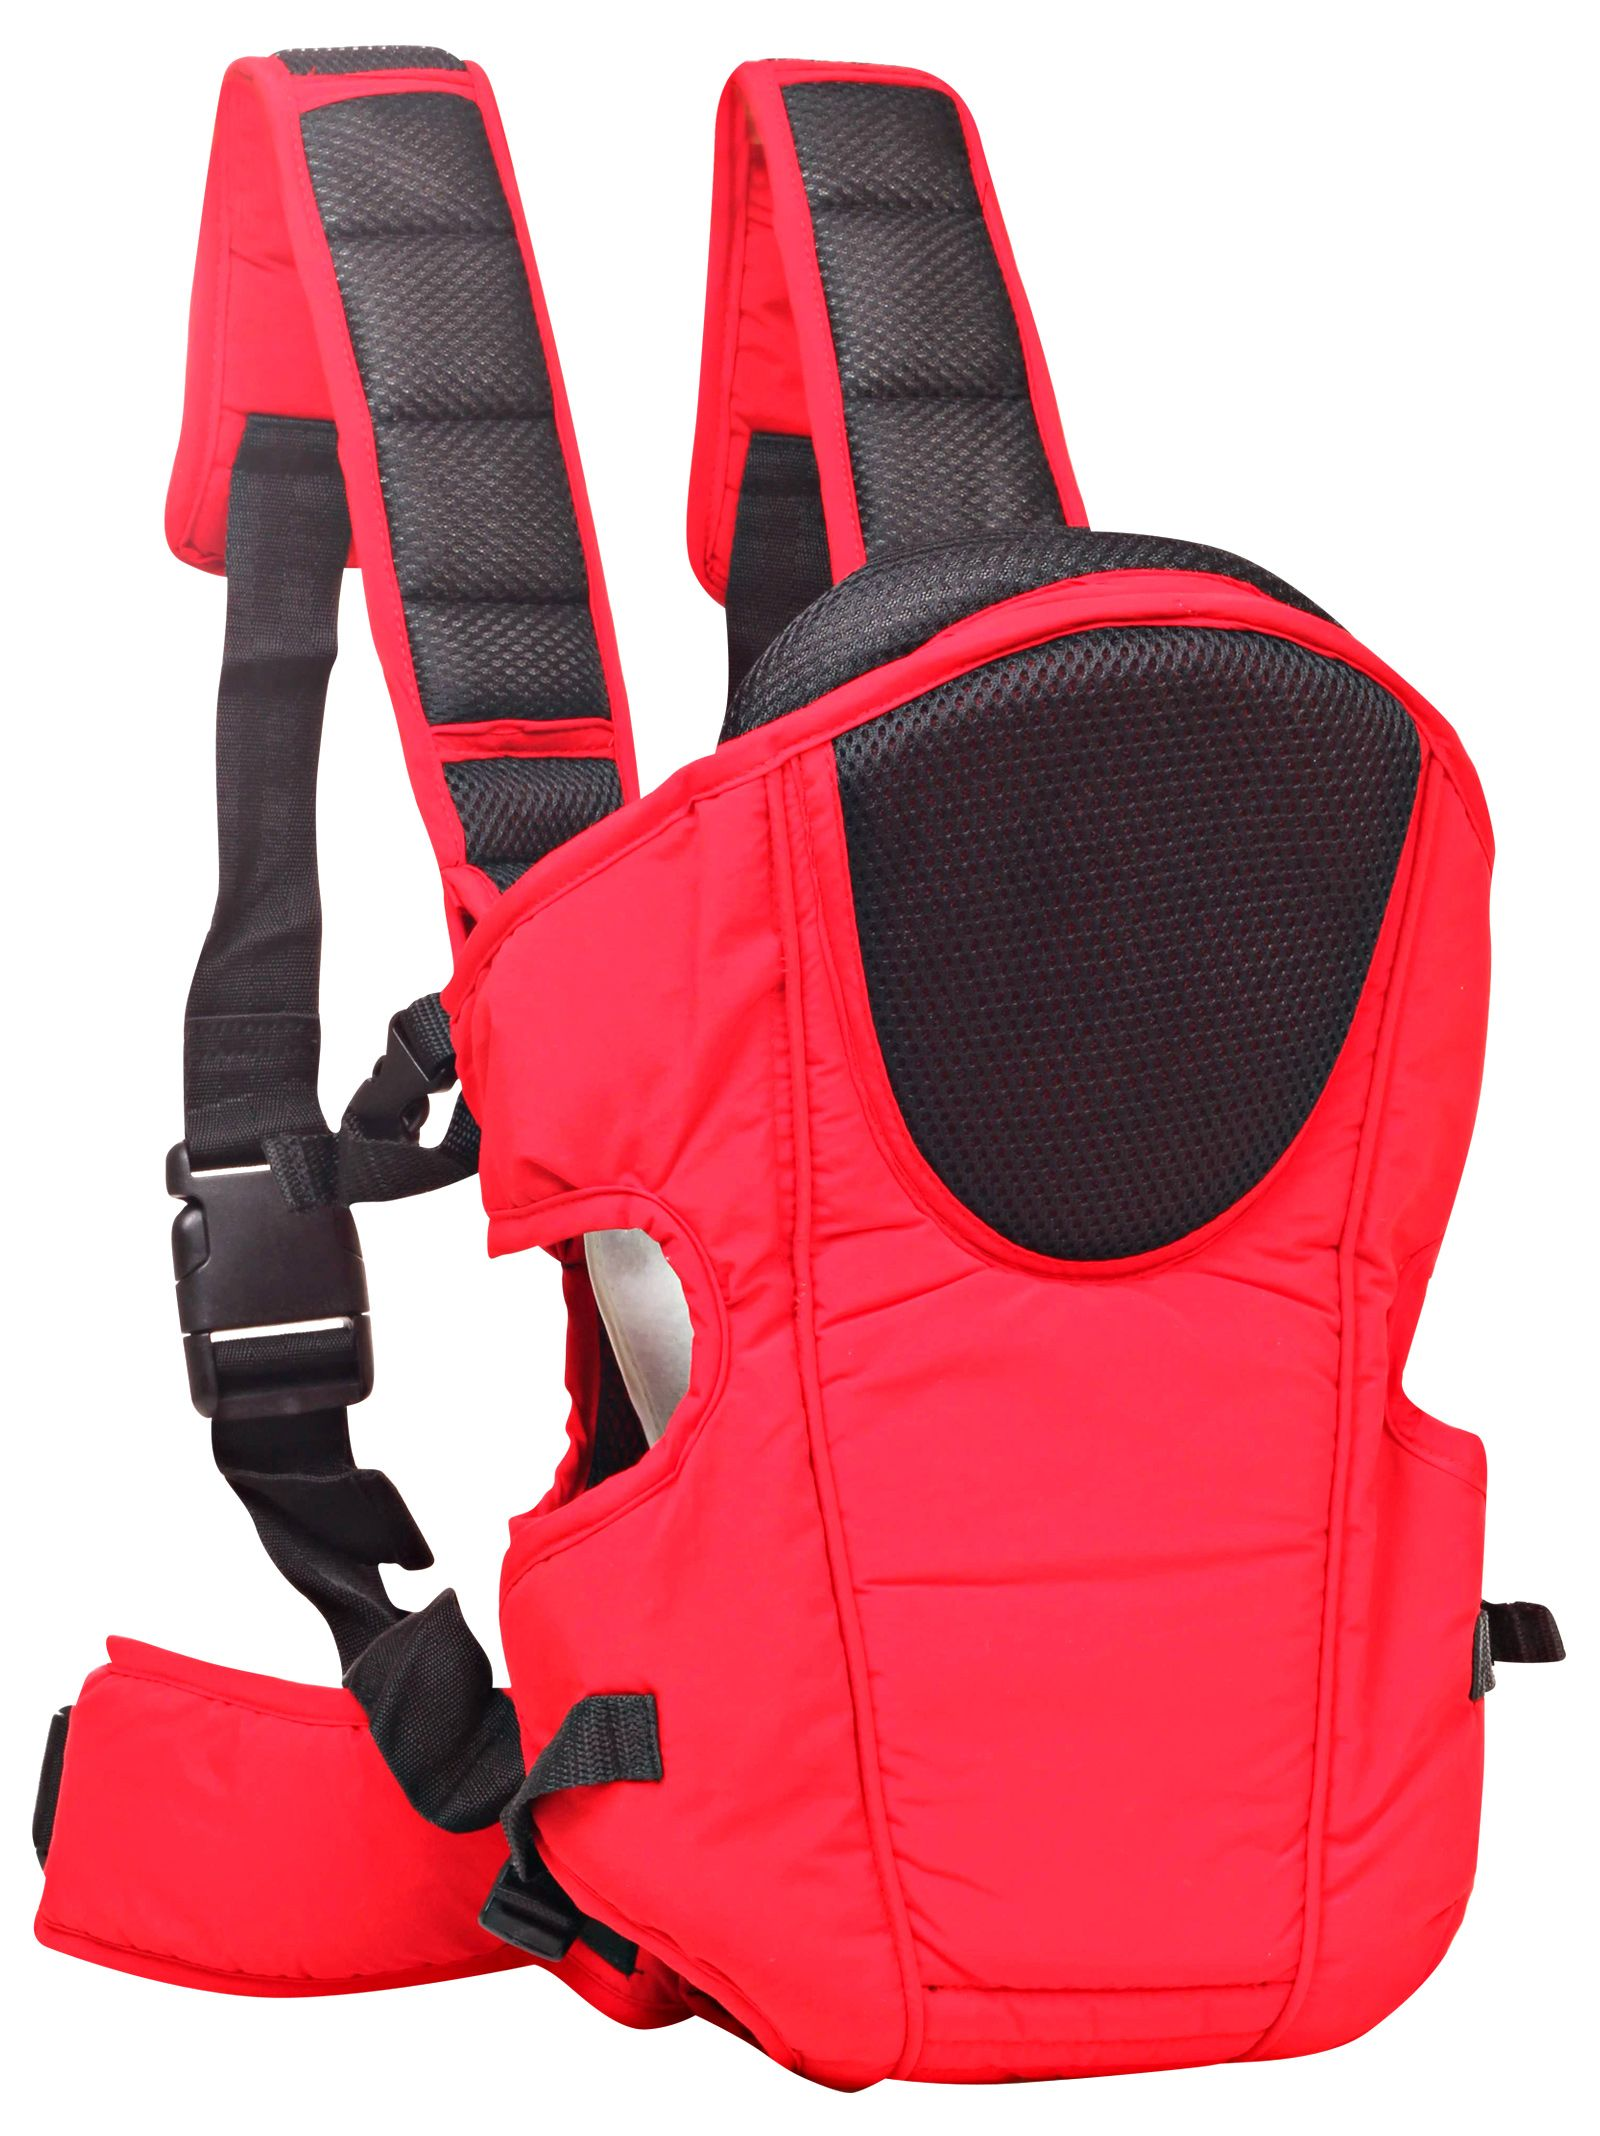 3 Way Baby Carrier With Padded Straps - Red